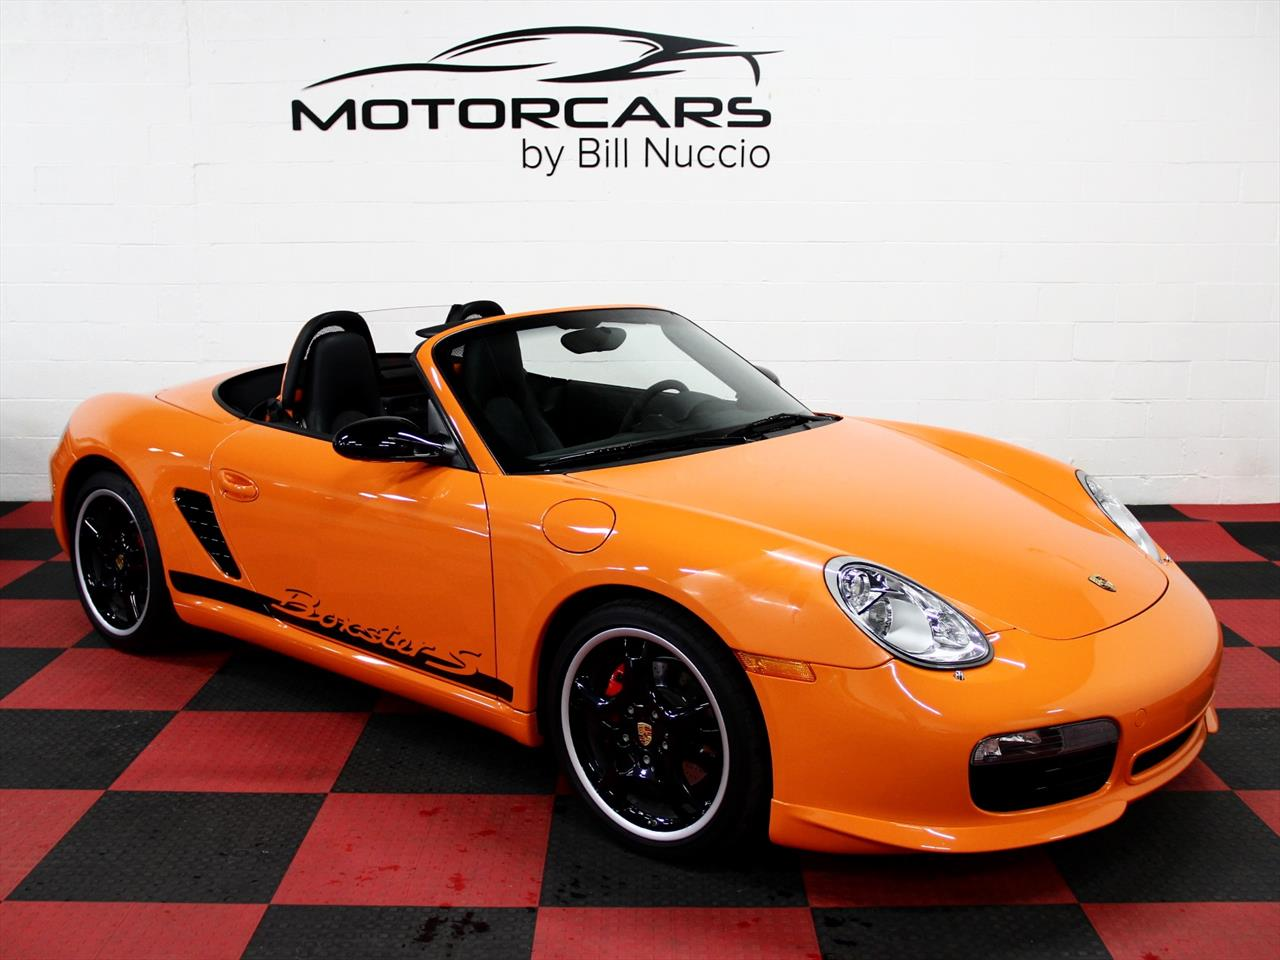 2008 Porsche Boxster S Limited Edition